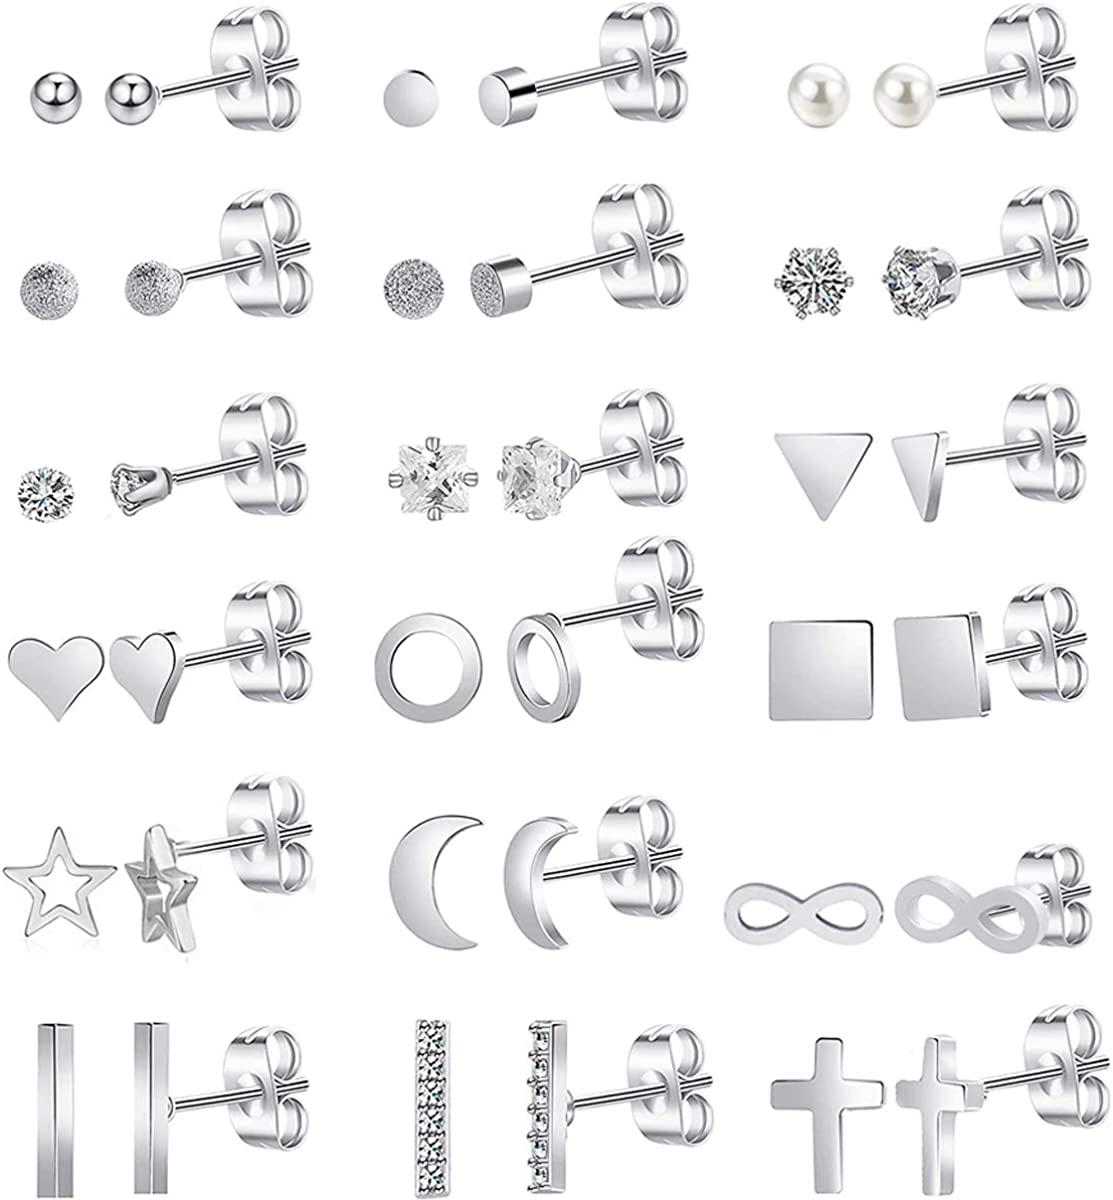 SPINEX 18 Pairs Surgical Steel Stud Earrings for Women Men Tiny Cartilage CZ Stud Earrings Bar Triangle Square Star Moon Heart Disc Ball Cross Infinity Stainless Steel Geometric Earrings Piercing Set (18 pairs)